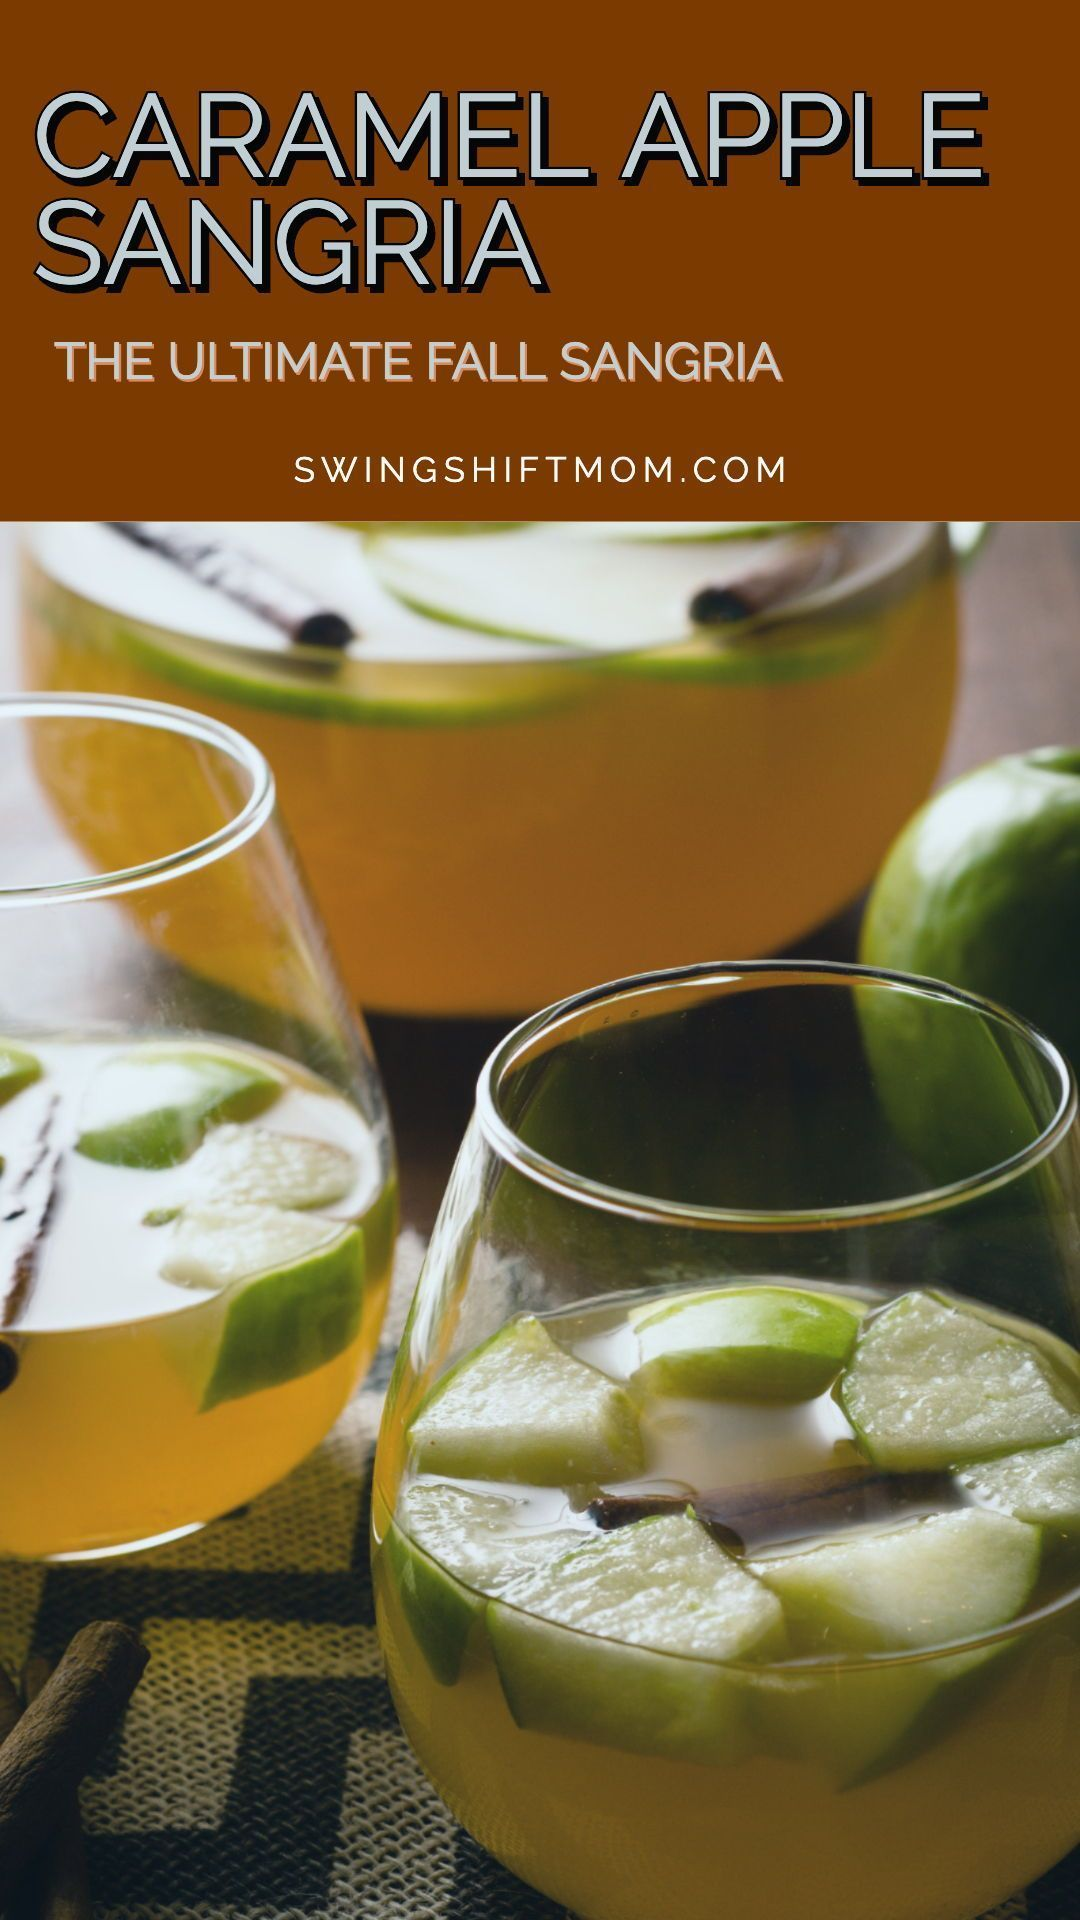 This caramel apple sangria recipe combines rich apple cider, white wine, and caramel vodka into a fall sangria that is perfect for Halloween, Thanksgiving and fall parties. A simple autumn sangria that is packed full of apple and caramel flavors. #sangria #cocktails #sangriarecipes #applecidersangriarecipe This caramel apple sangria recipe combines rich apple cider, white wine, and caramel vodka into a fall sangria that is perfect for Halloween, Thanksgiving and fall parties. A simple autumn san #applecidersangriarecipe